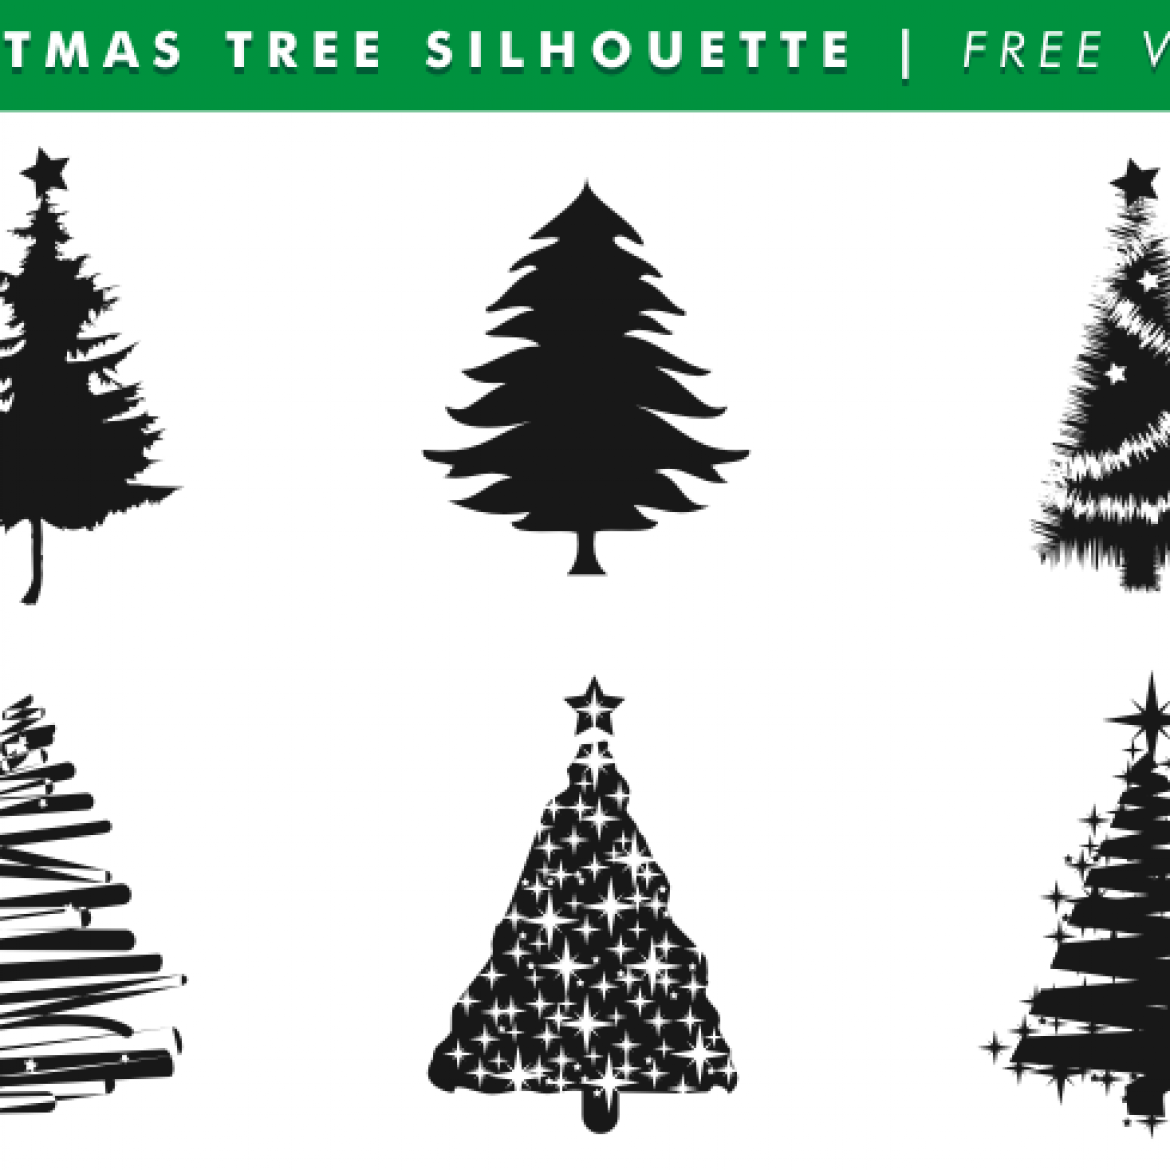 Free Vector Christmas Tree Silhouettes Free Vector 11469 Christmas Tree Silhouette Christmas Vectors Tree Silhouette